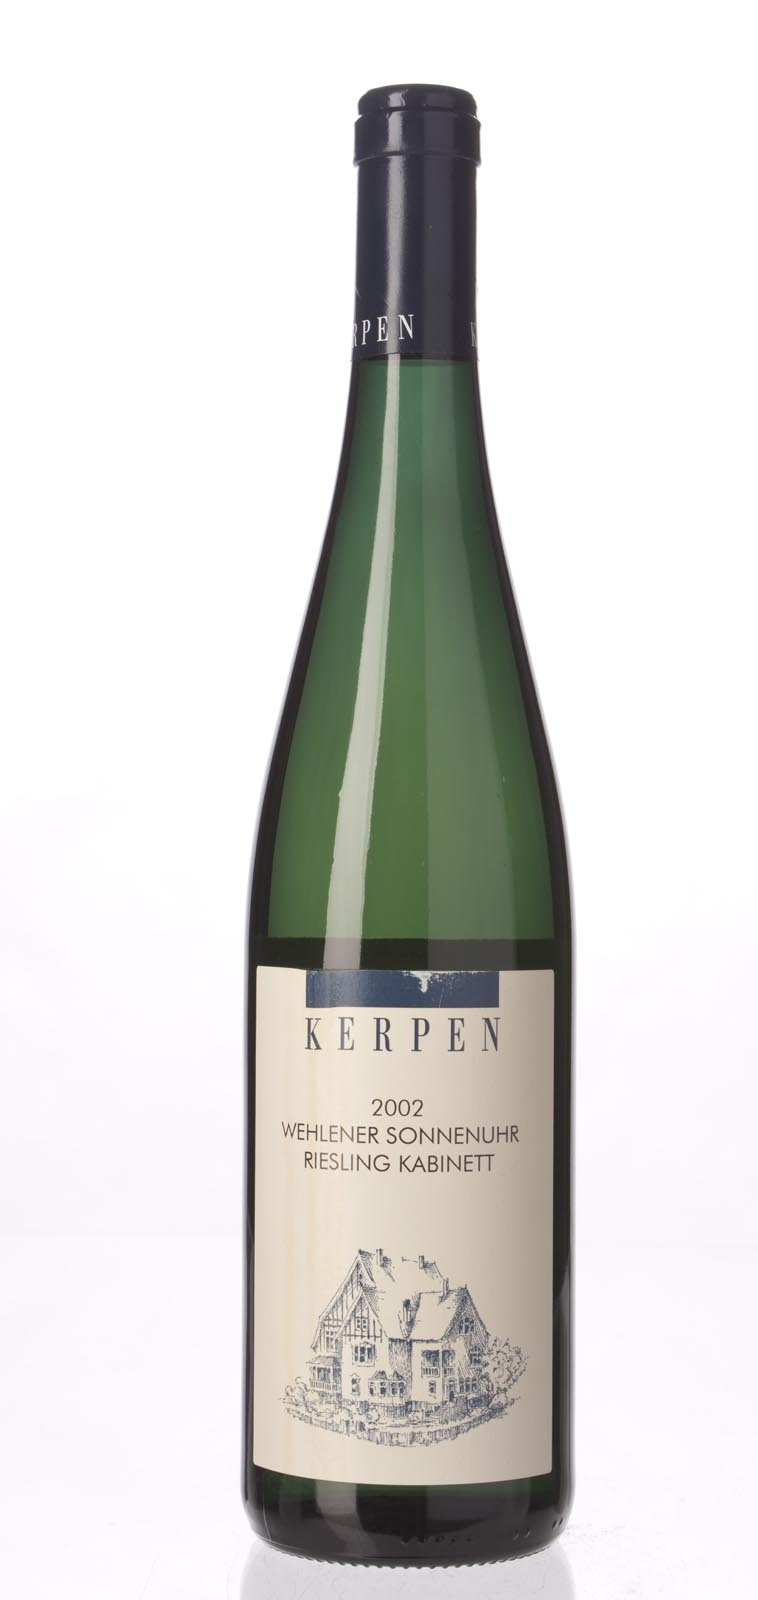 Kerpen Wehlener Sonnenuhr Riesling Kabinett 2002, 750mL (CT90) from The BPW - Merchants of rare and fine wines.